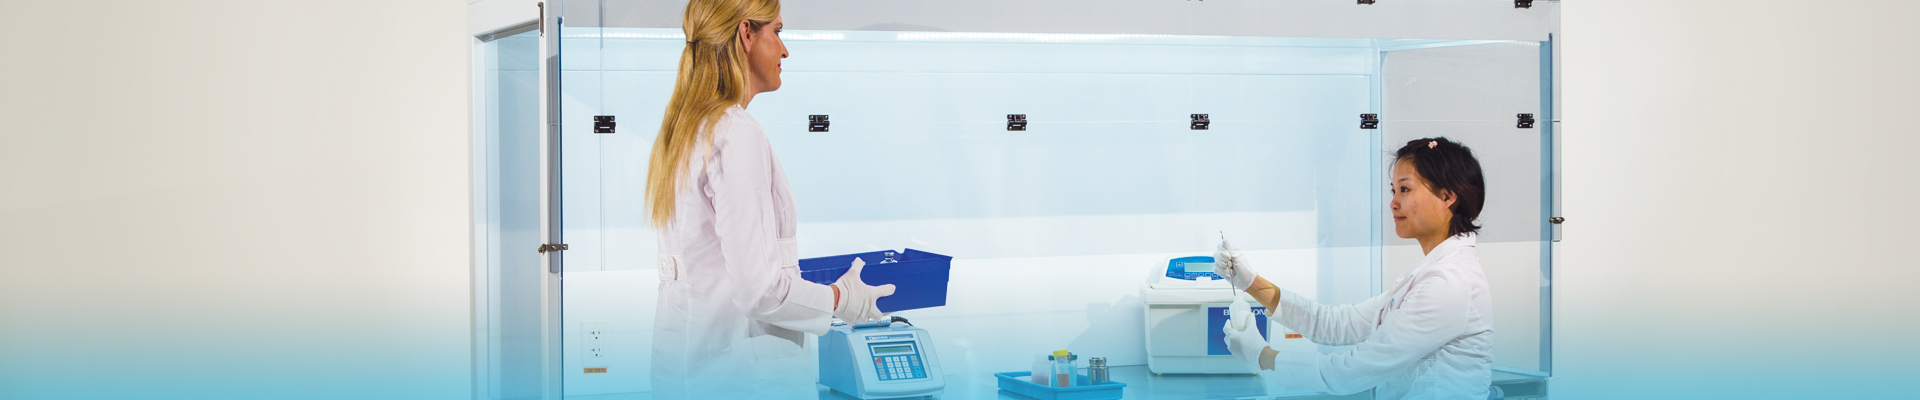 Laminar Flow Hoods & Clean Benches